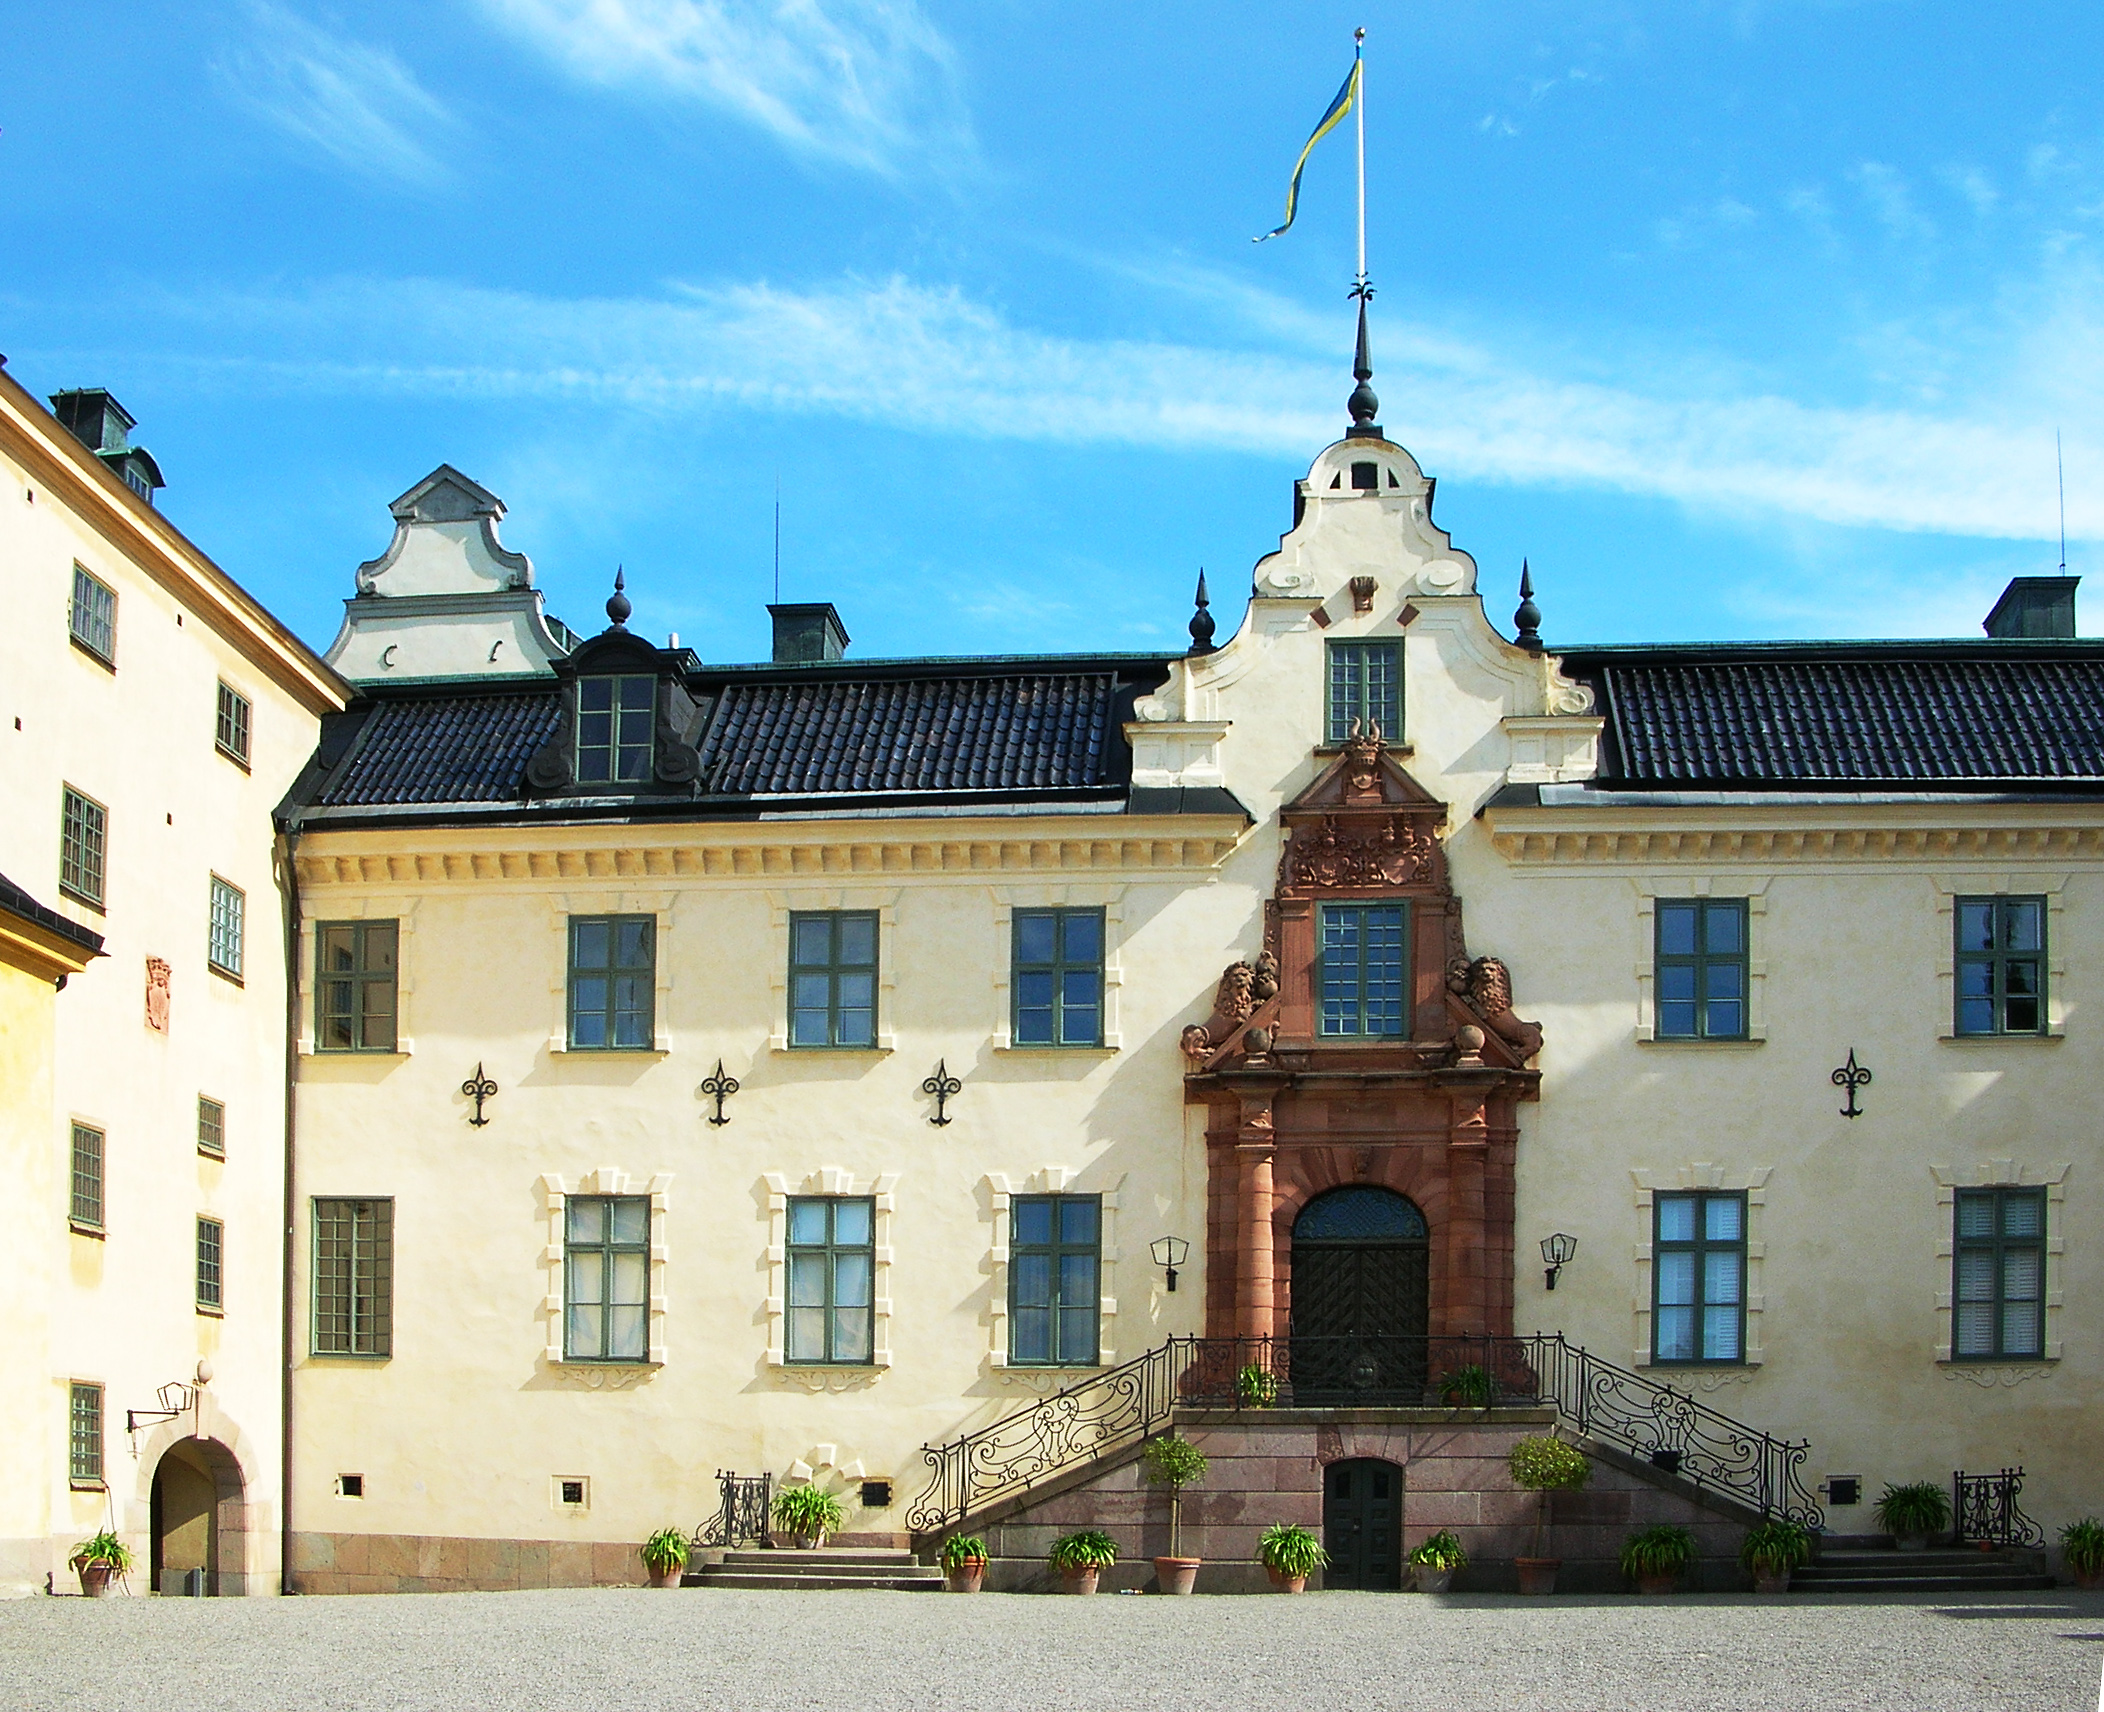 filetyreso slott main entry1jpg wikimedia commons